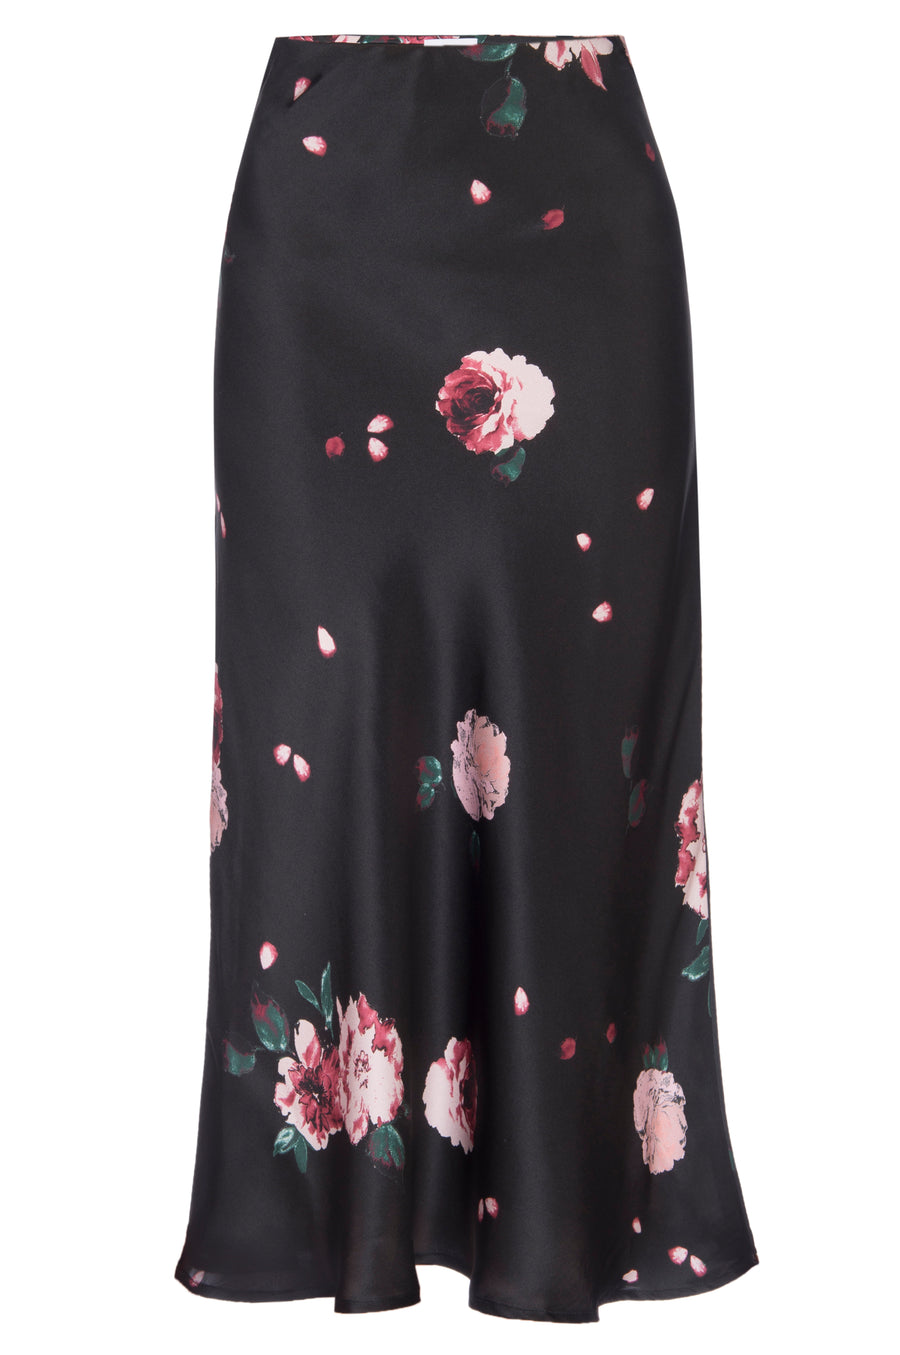 Silk Charmeuse 'Katie' Bias Skirt: Black Rose Print